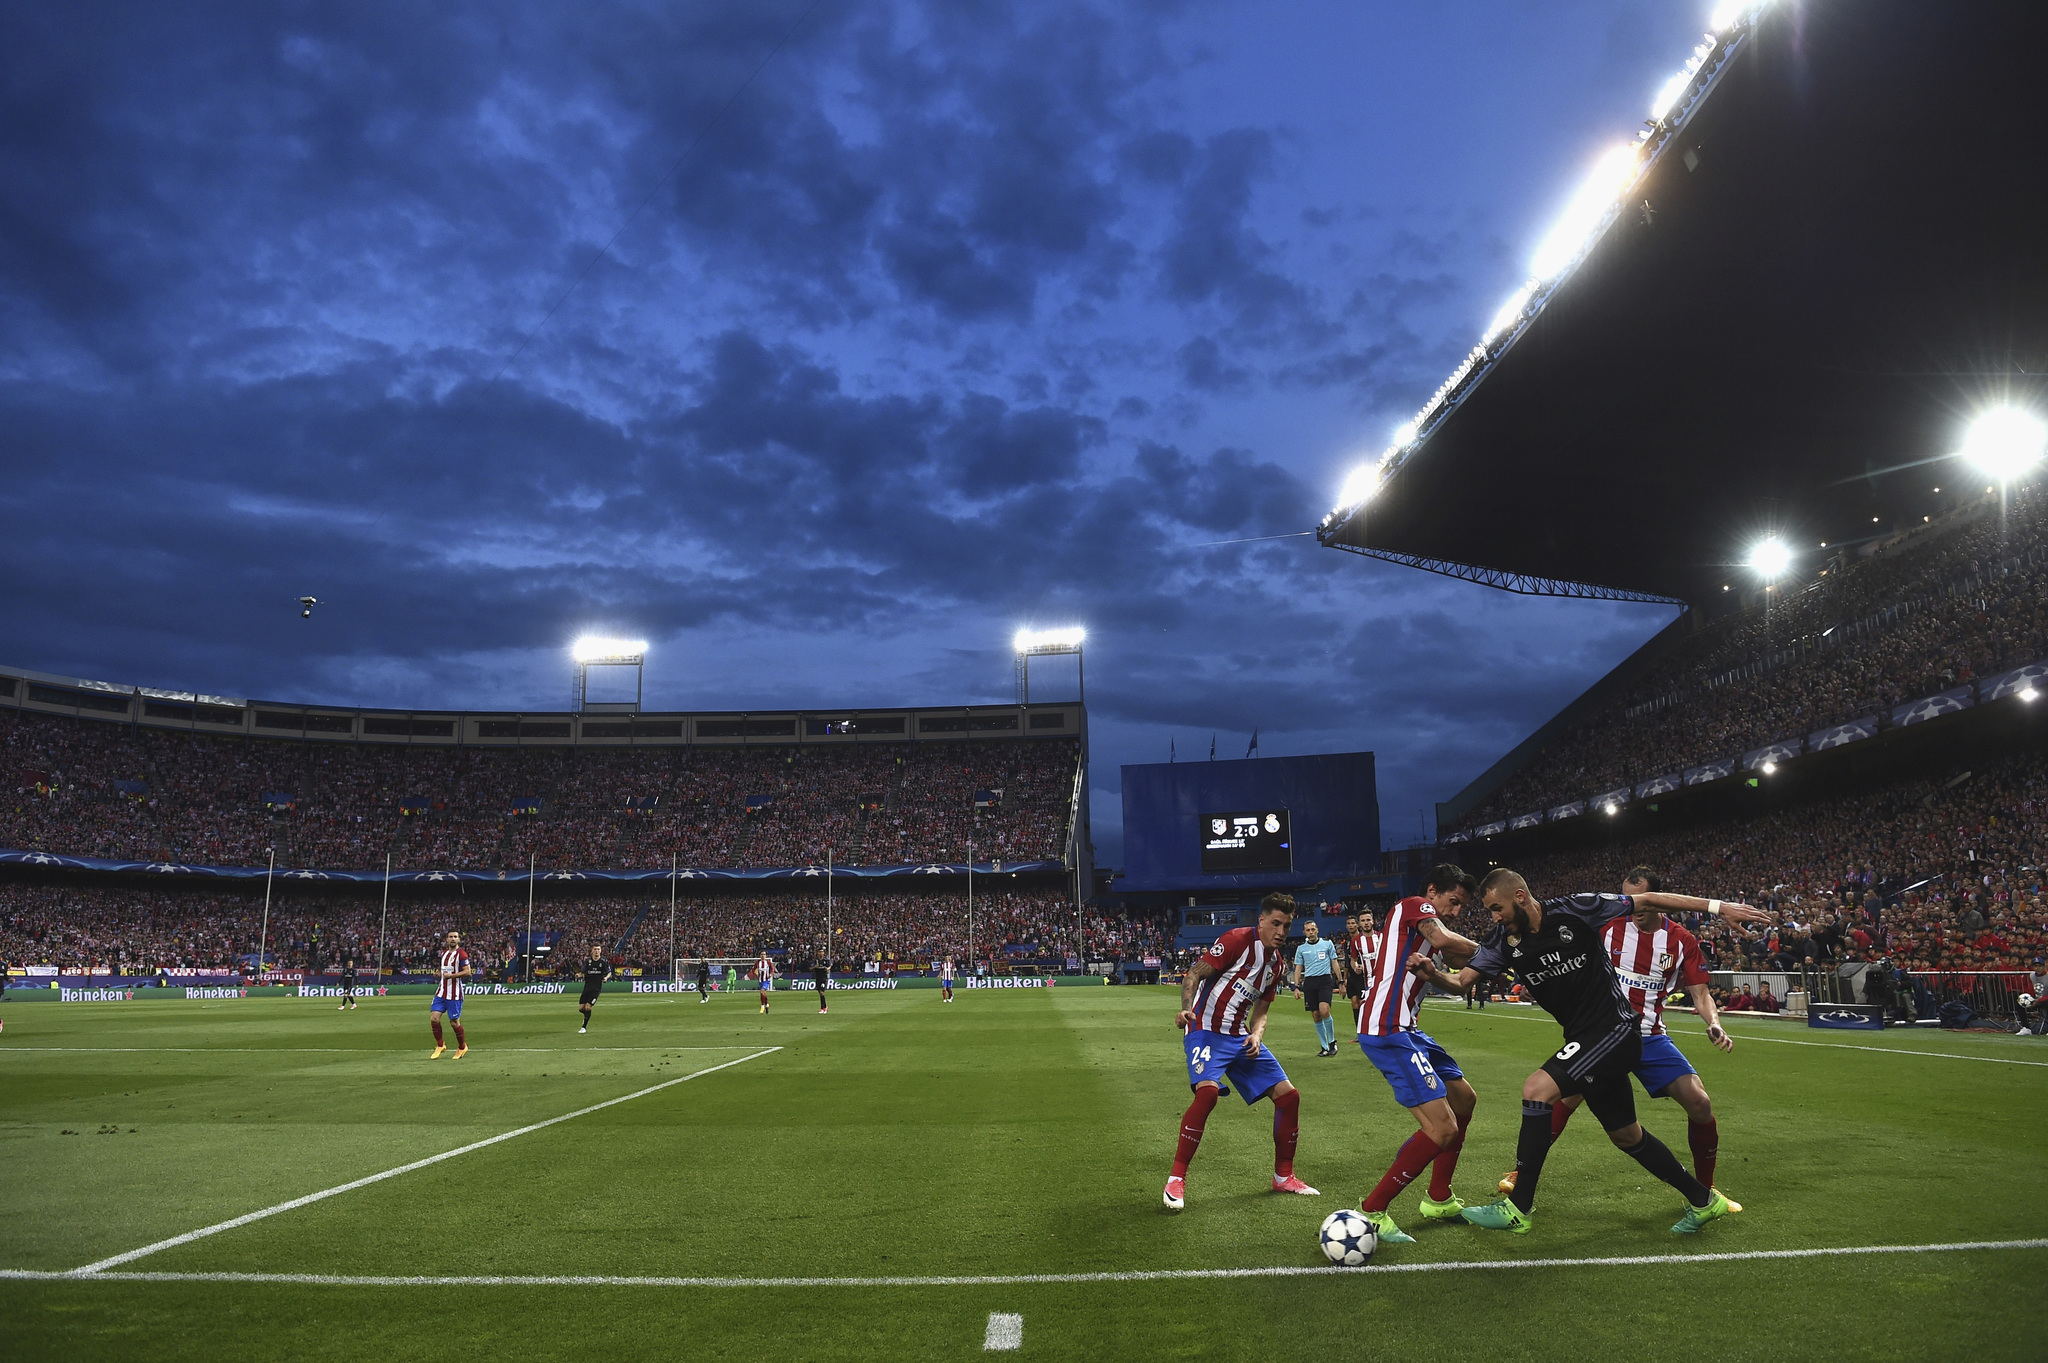 MADRID, SPAIN - MAY 10: A general view as Karim <HIT>Benzema</HIT> of Real Madrid takes on Stefan Savic of Atletico Madrid during the UEFA Champions League Semi Final second leg match between Club Atletico de Madrid and Real Madrid CF at Vicente <HIT>Calderon</HIT> Stadium on May 10, 2017 in Madrid, Spain. (Photo by Laurence Griffiths/Getty Images) NO USAR EN INTERNET HASTA QUE SE PUBLIQUE EN PAPEL